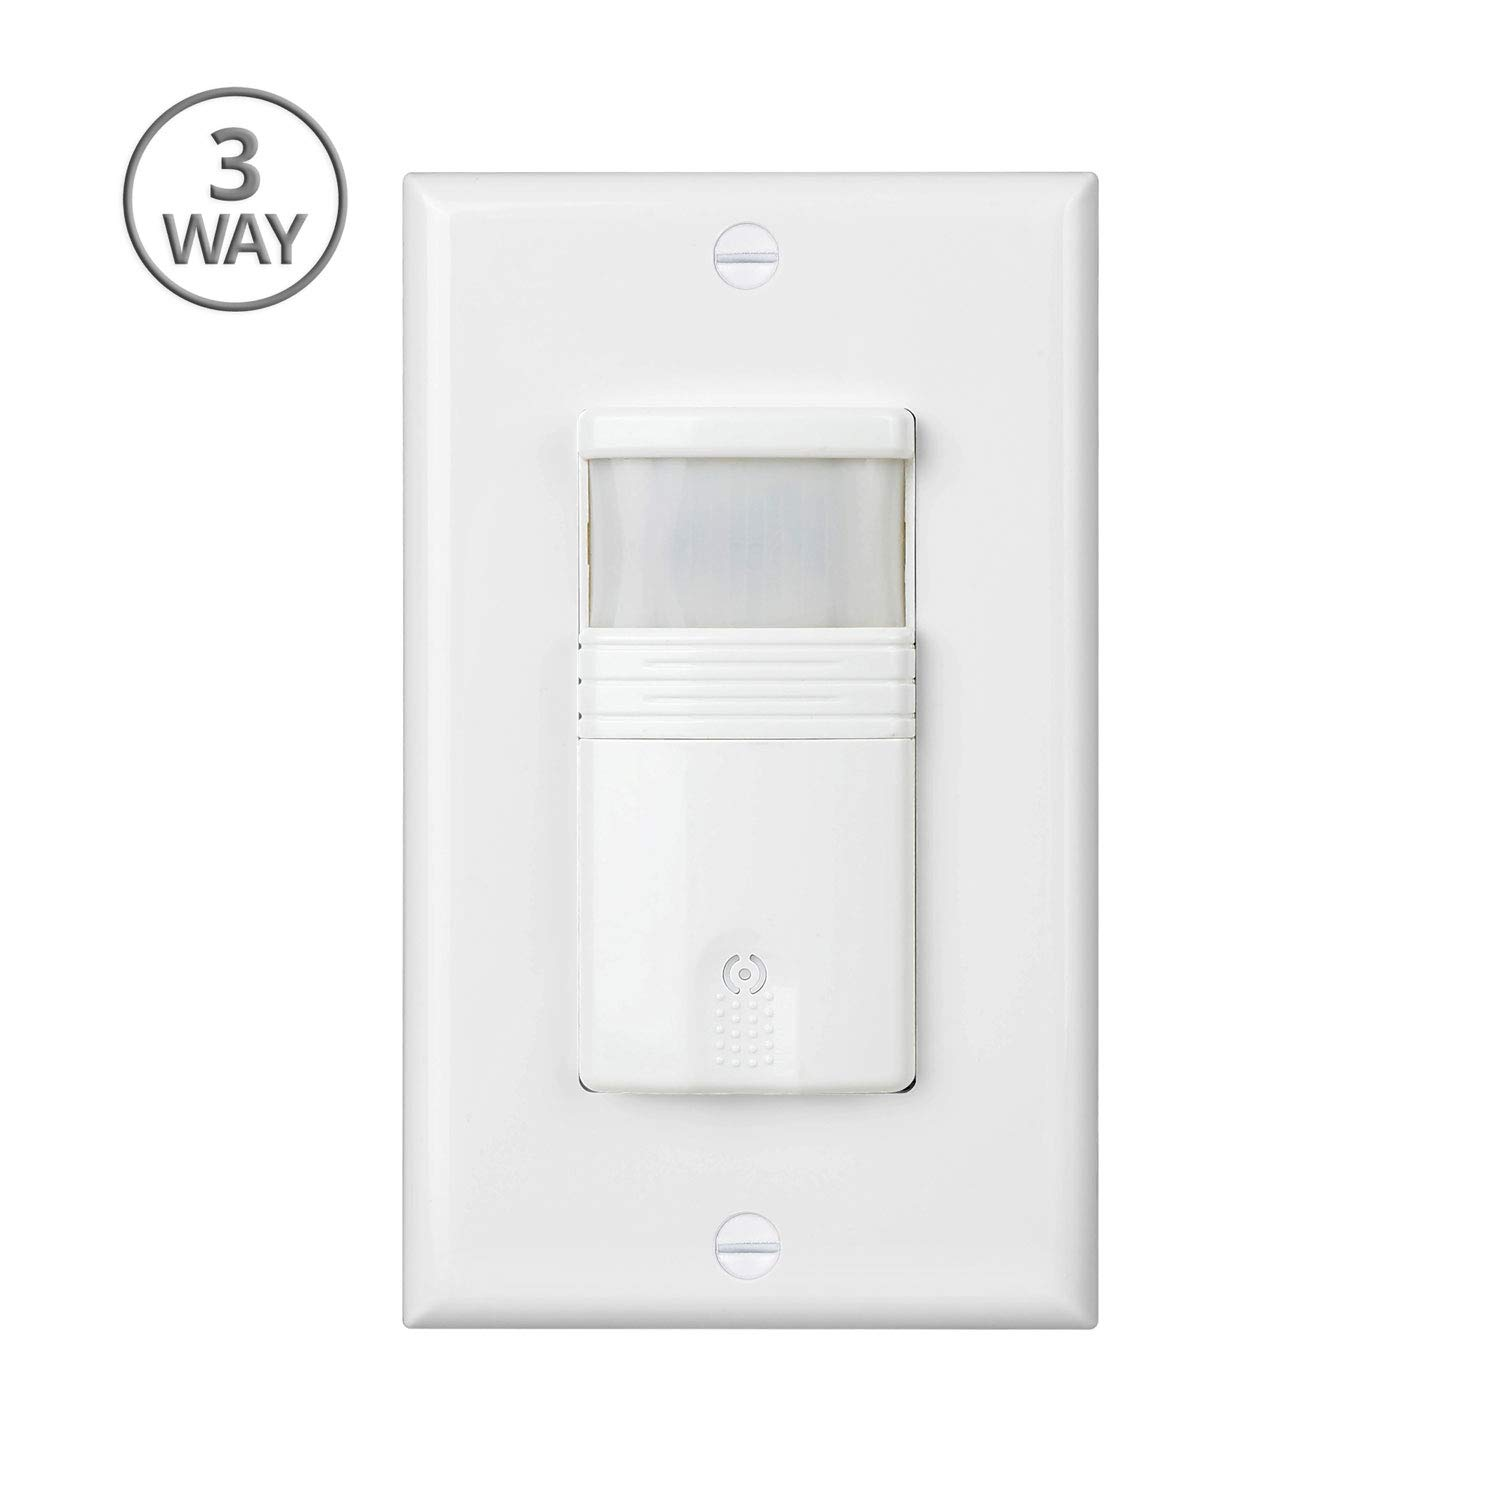 Pack Of 2 White 3 Way Motion Sensor Light Switch Neutral Wire Plate Required For Indoor